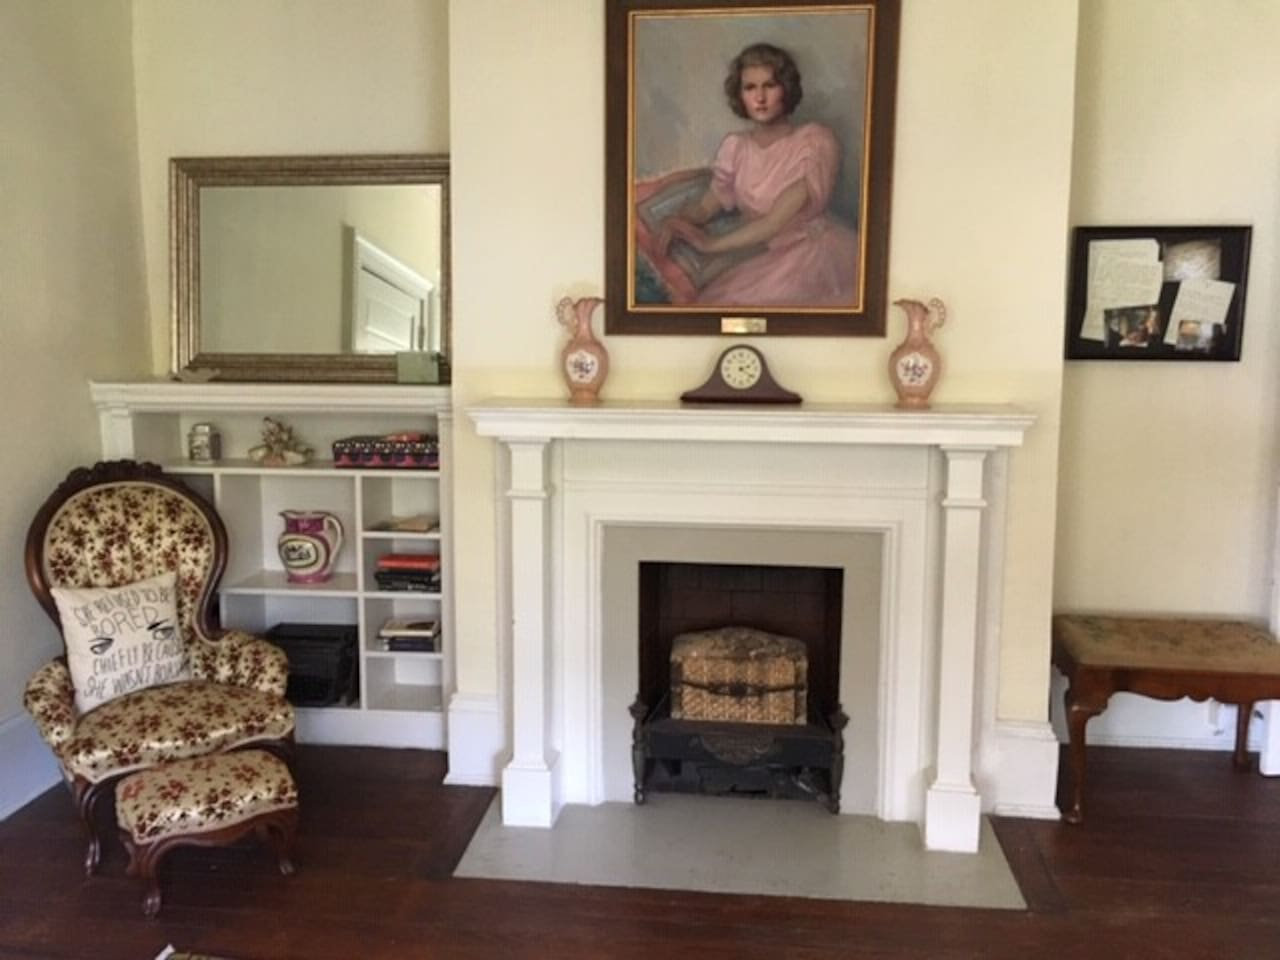 Cozy up with your favorite Fitzgerald classic in this charming Old Cloverdale apartment.